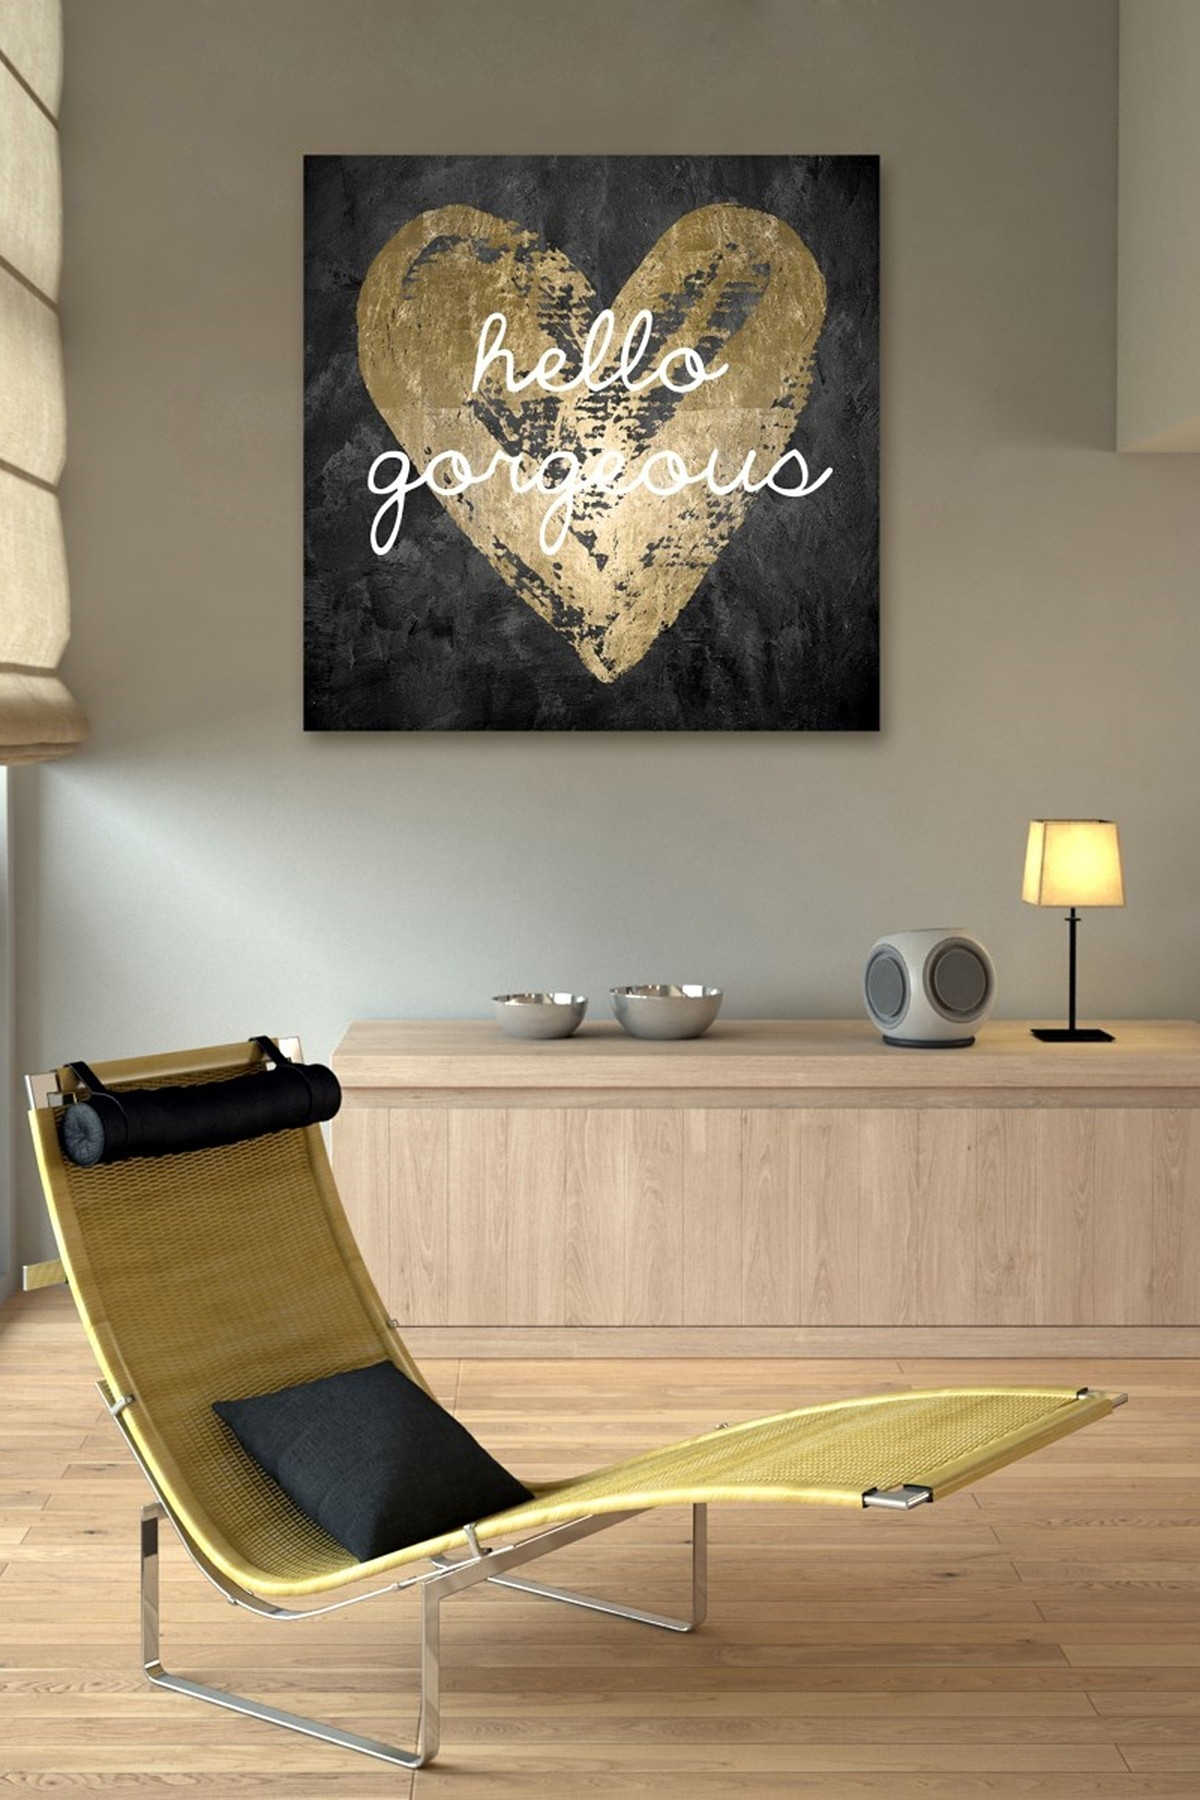 Pineleanor G On Wantee | Pinterest | Oliver Gal, Canvases And In Best And Newest Hearts Canvas Wall Art (View 13 of 15)